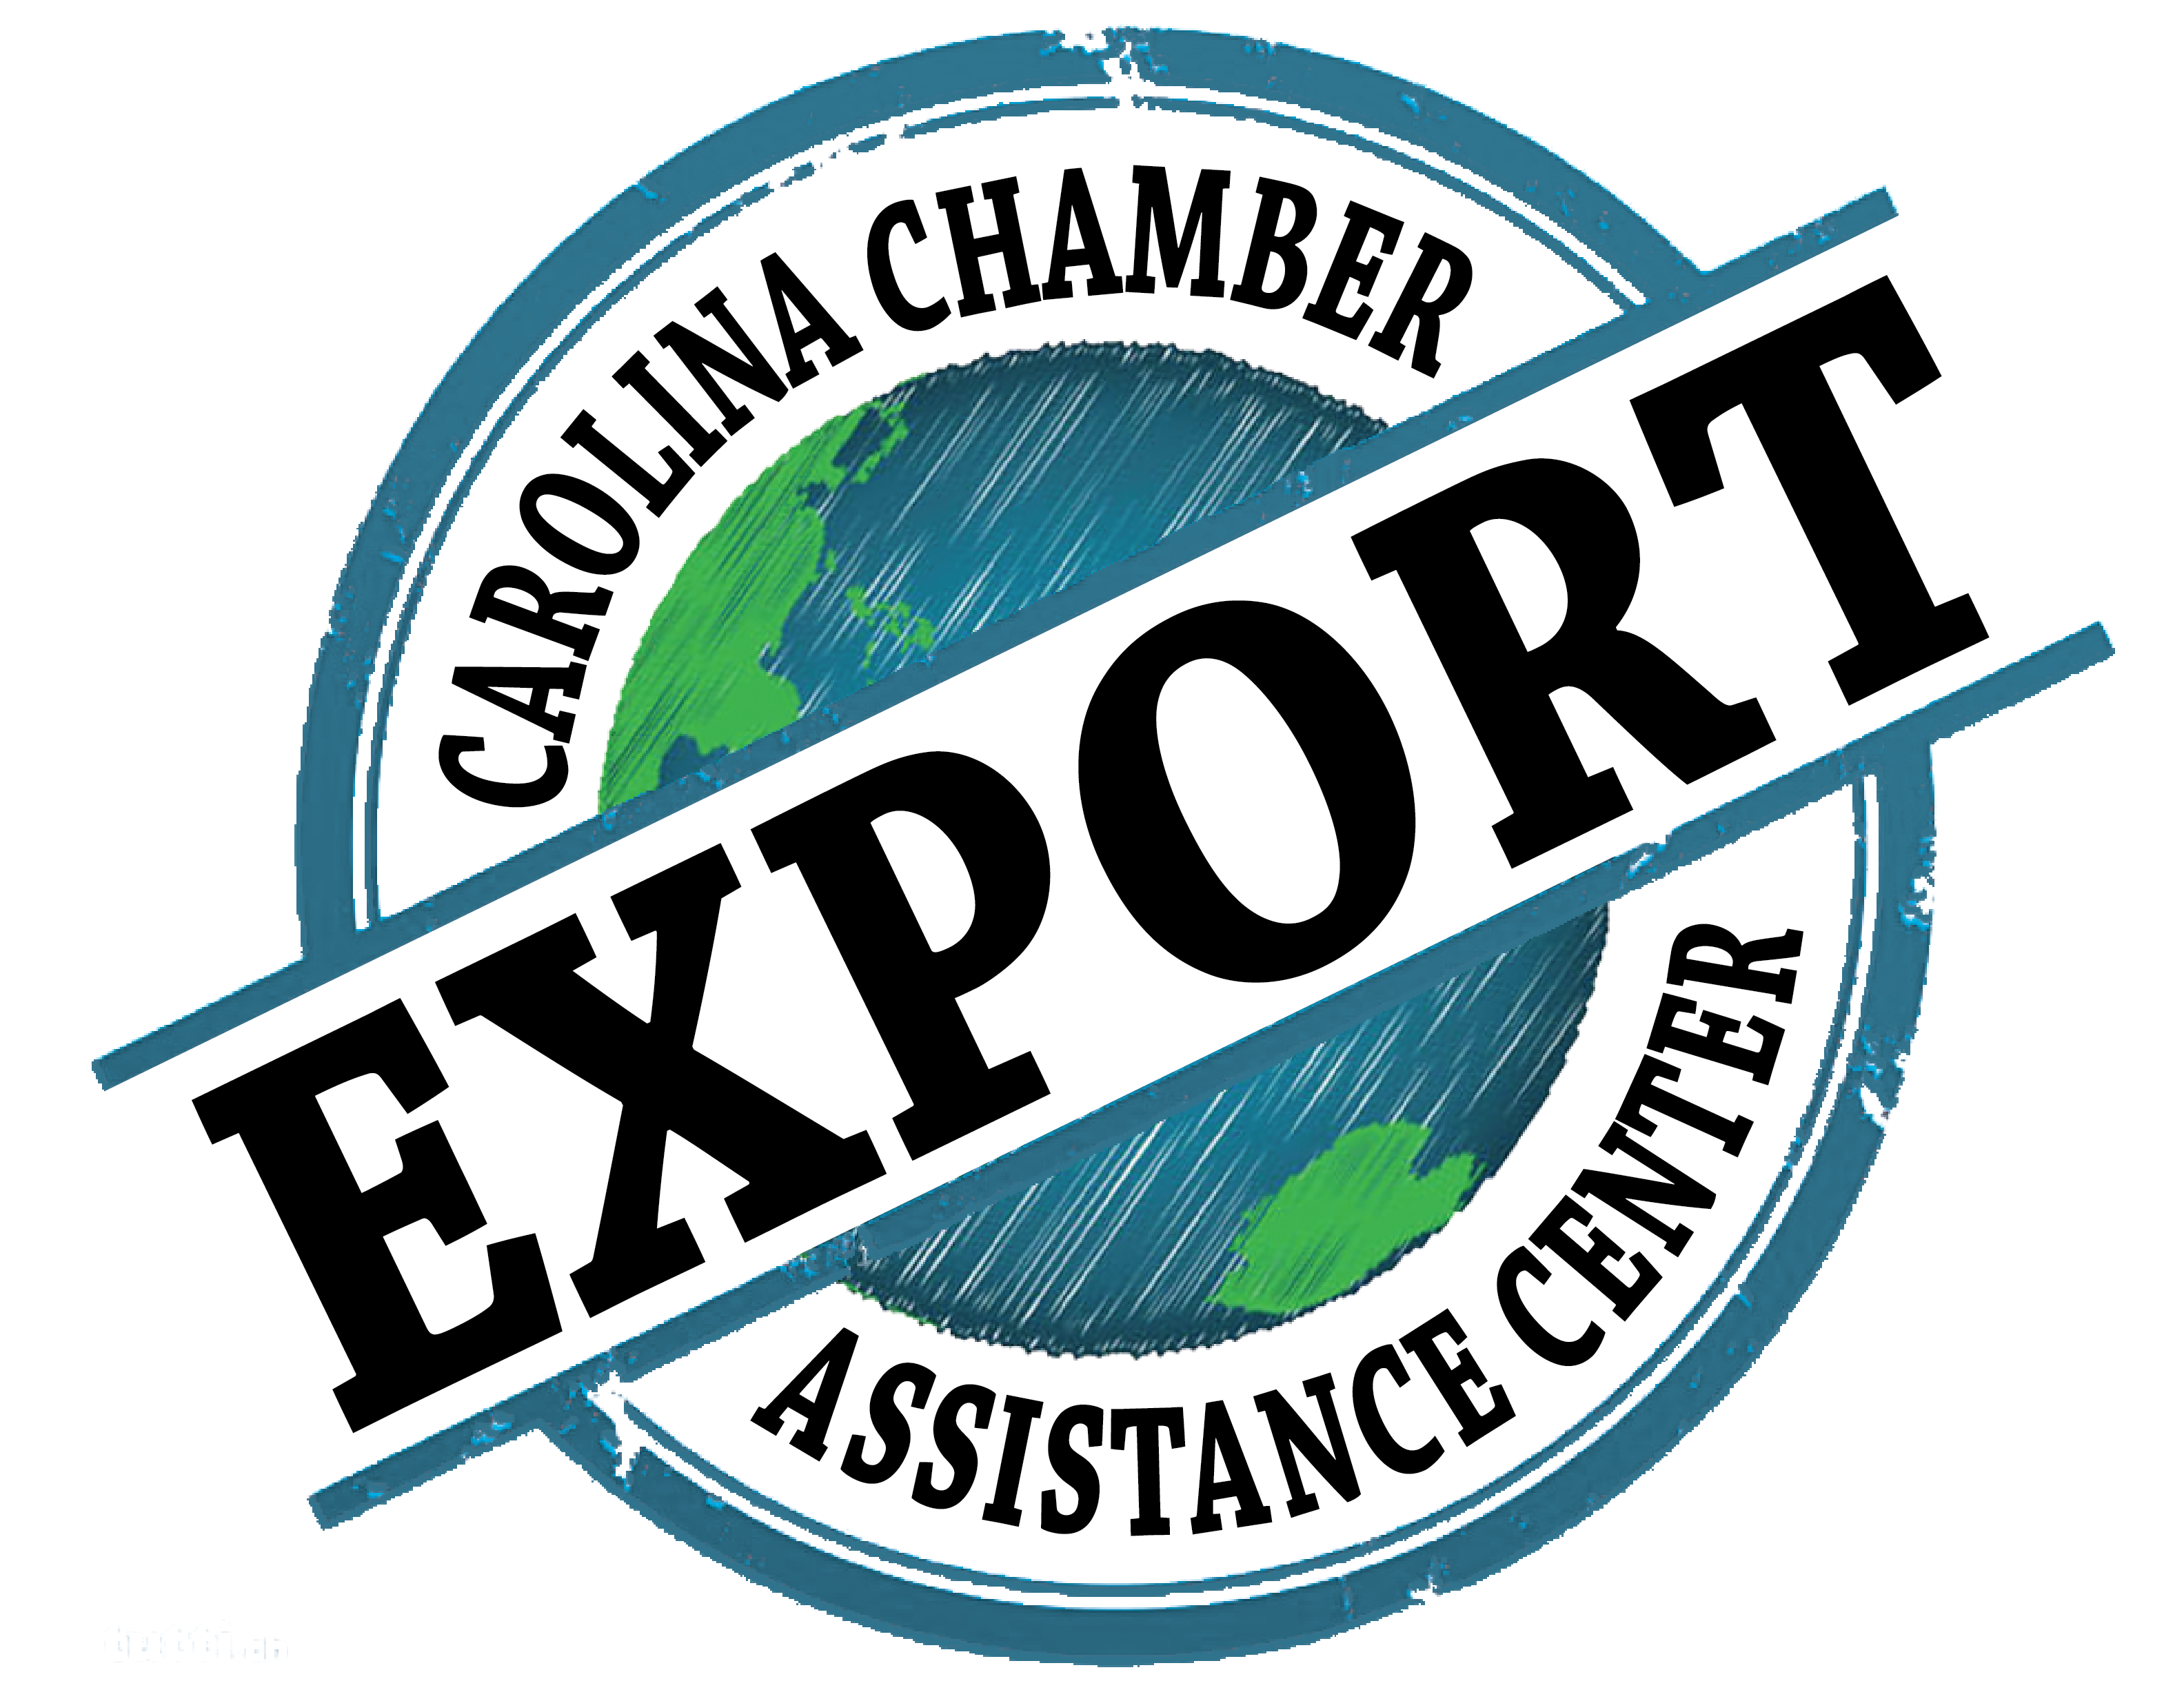 ​Wilmington Chamber of Commerce Announces Partnership with Carolina Chamber Export Association